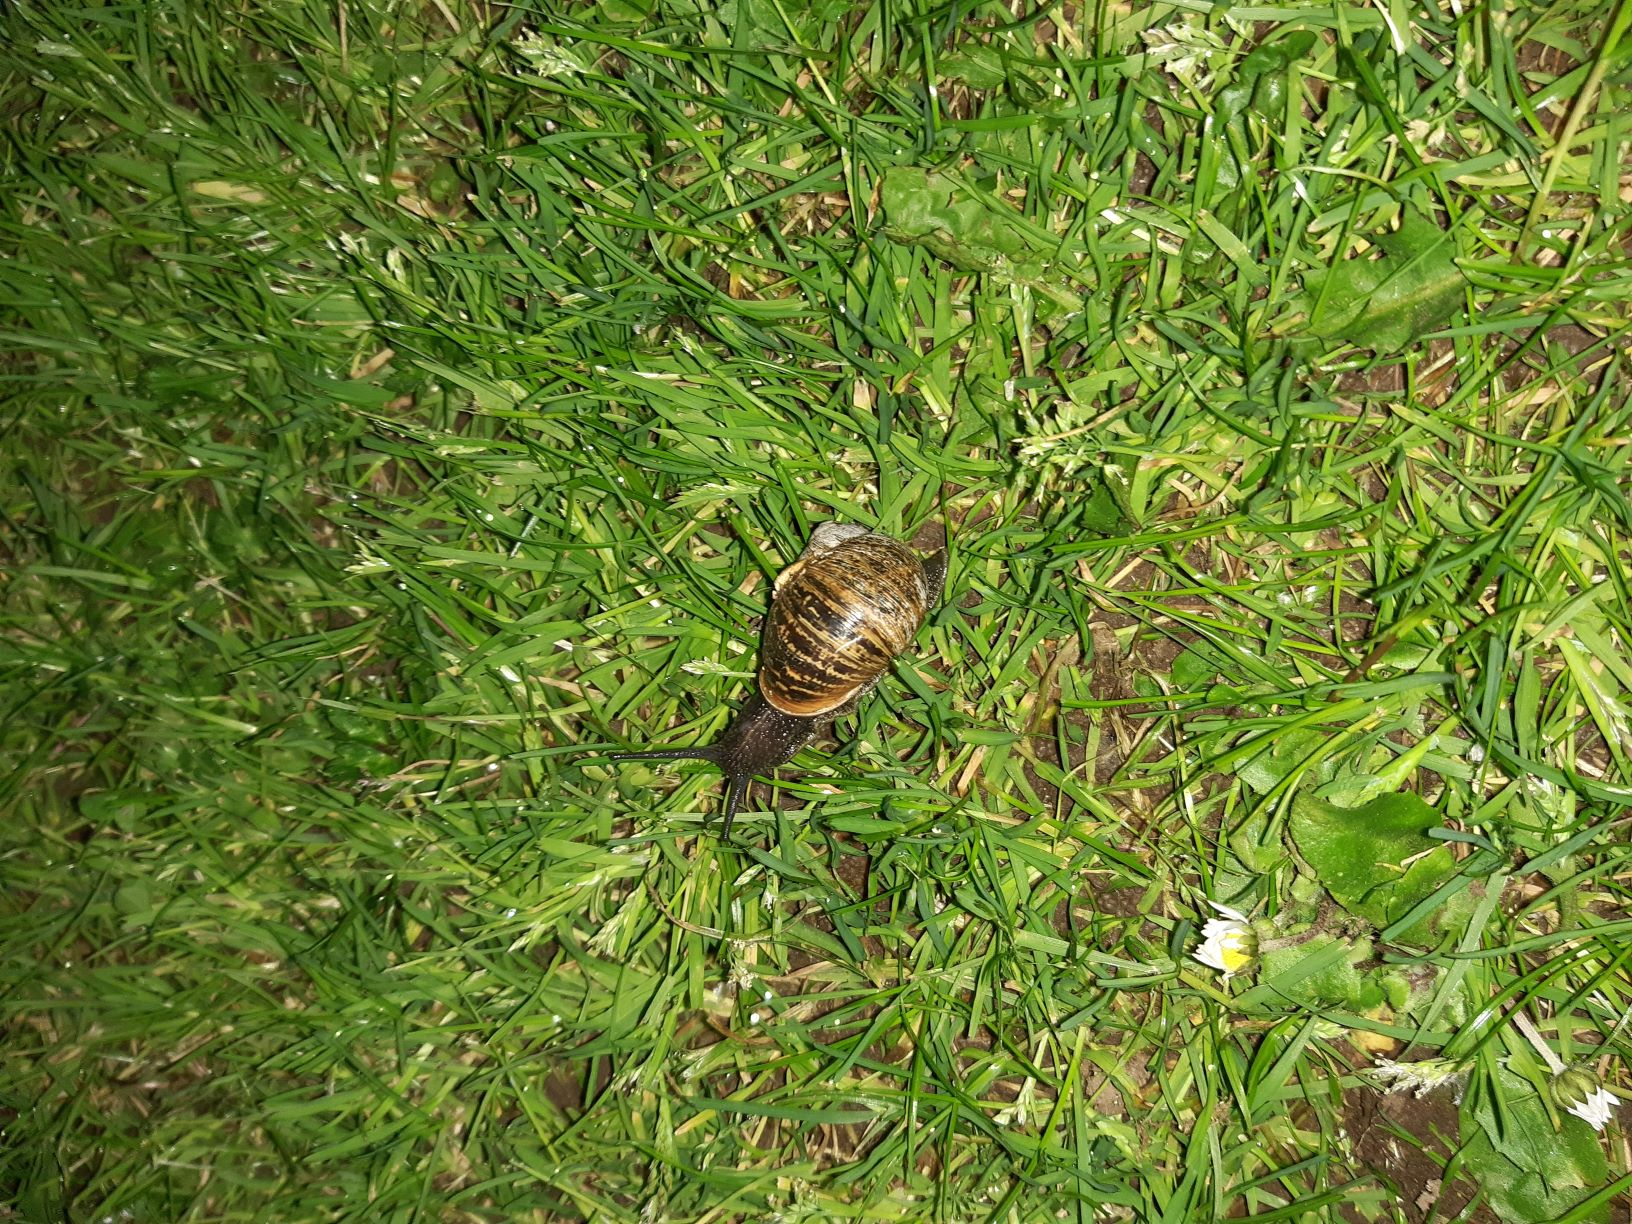 The image shows a garden snail on grass. There's a daisy in the bottom left corner of the picture, closed up for the night. The snail has a brindled brown and tan shell, and dark pebbly skin. Its eyestalks are extended, actively searching around. It seems interested in the world around it.